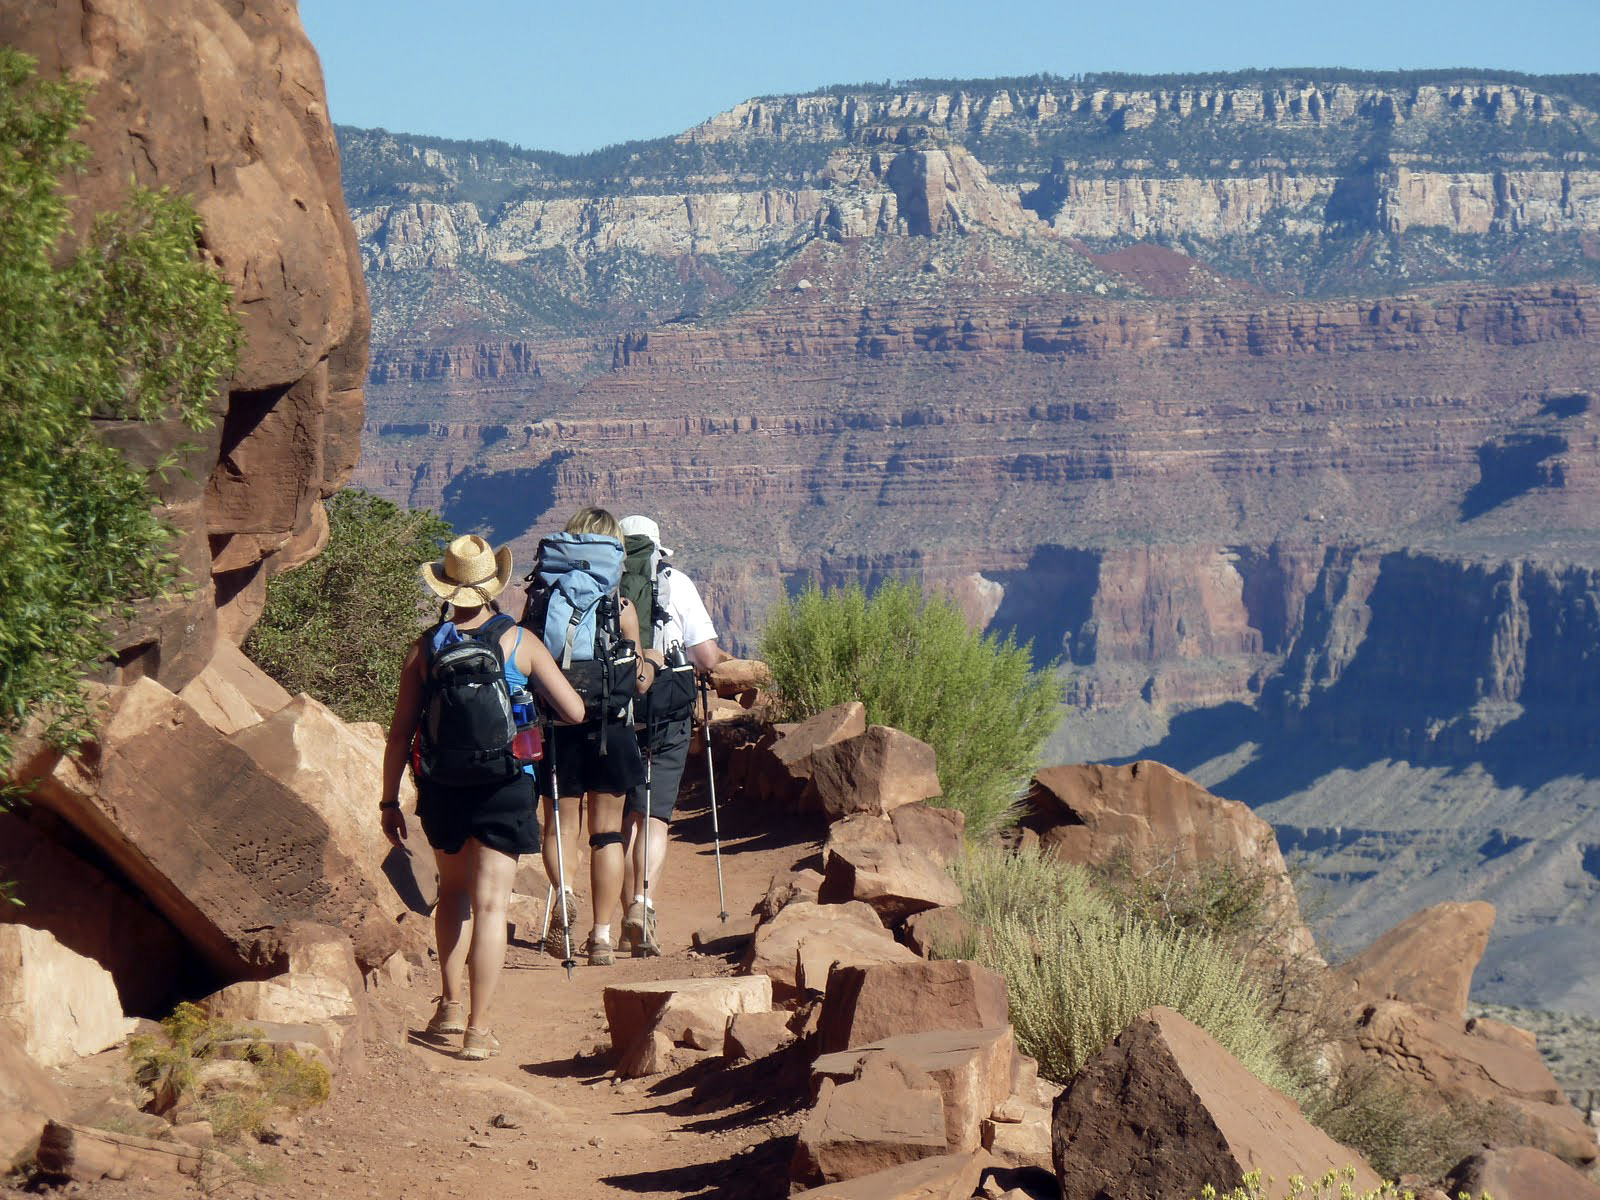 Entrance fees rising in some national parks